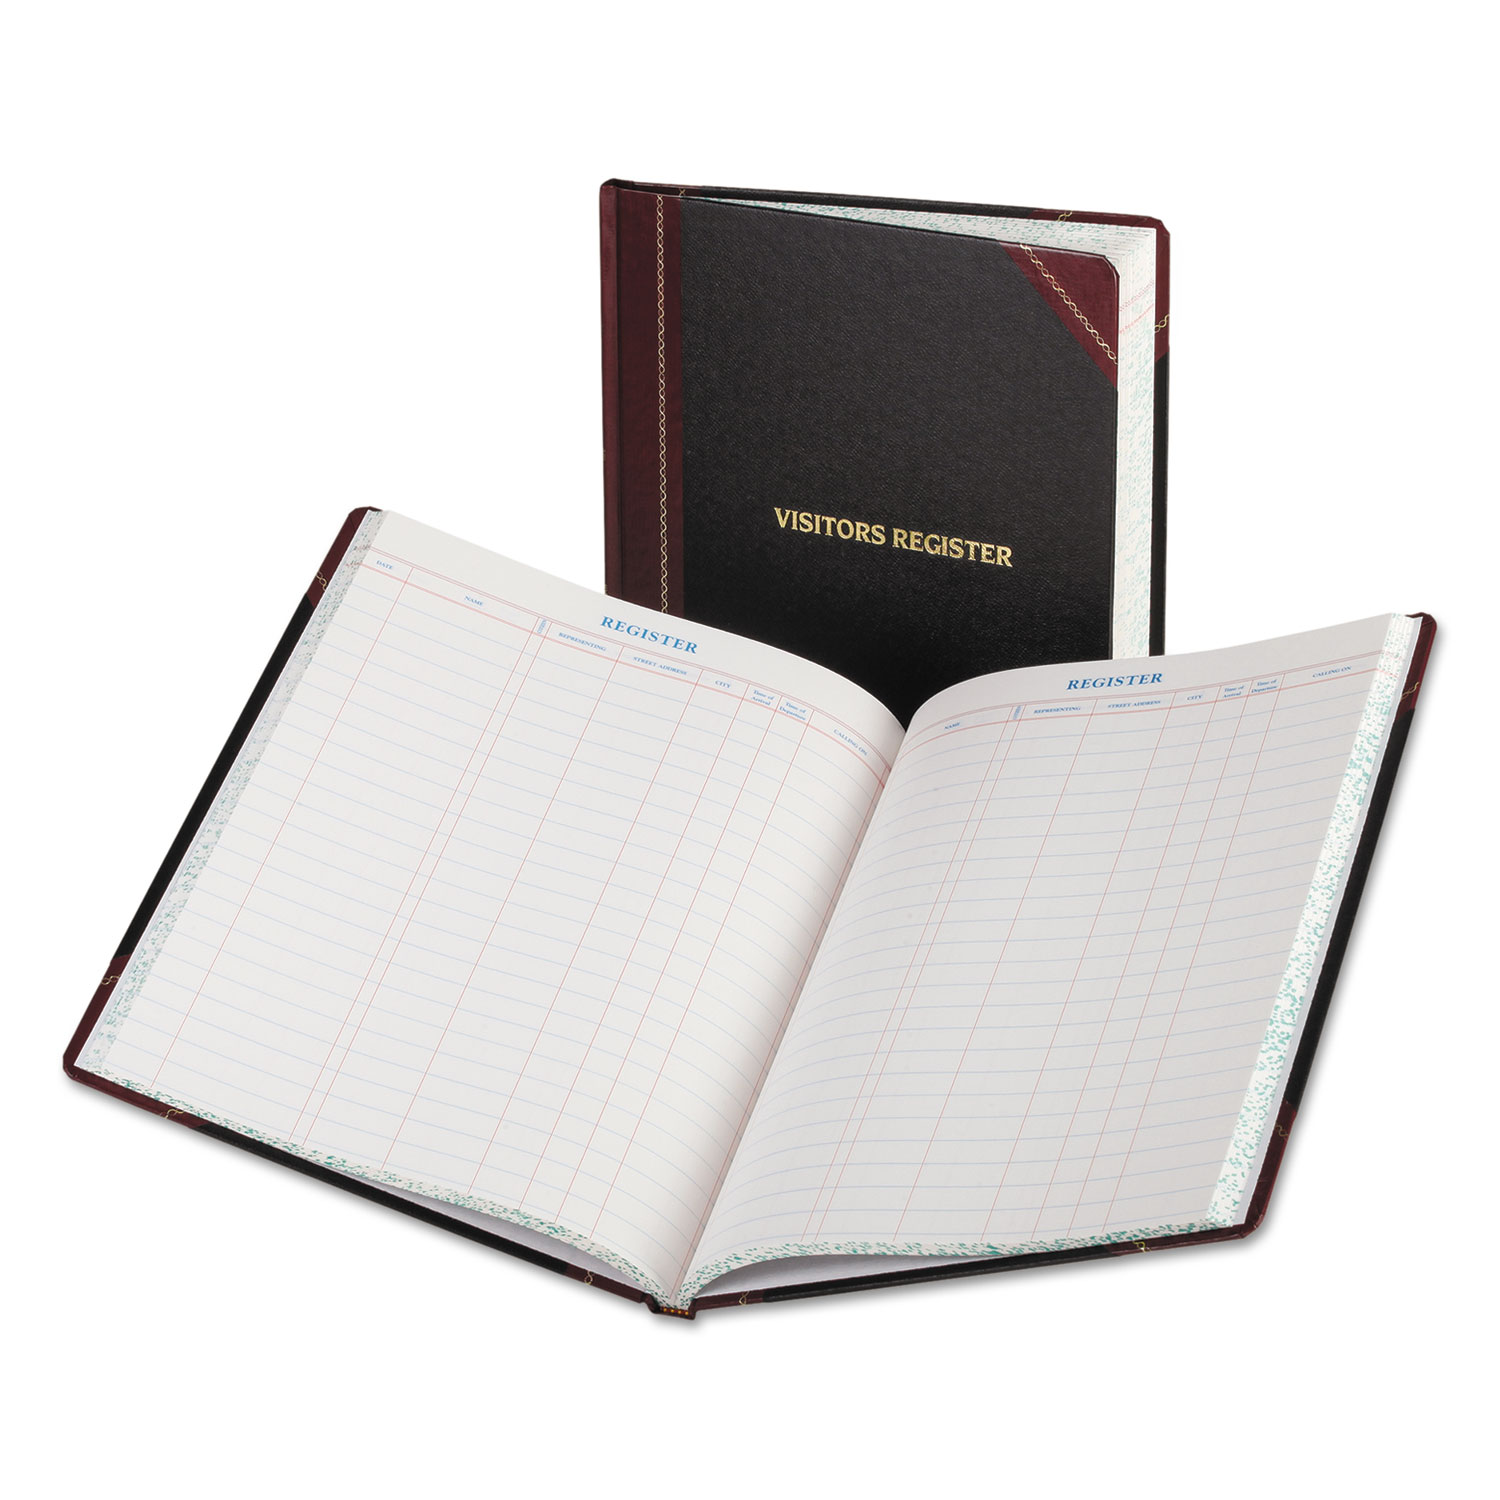 Visitor Register Book, Black/Red Hardcover, 150 Pages, 10 7/8 x 14 1/8